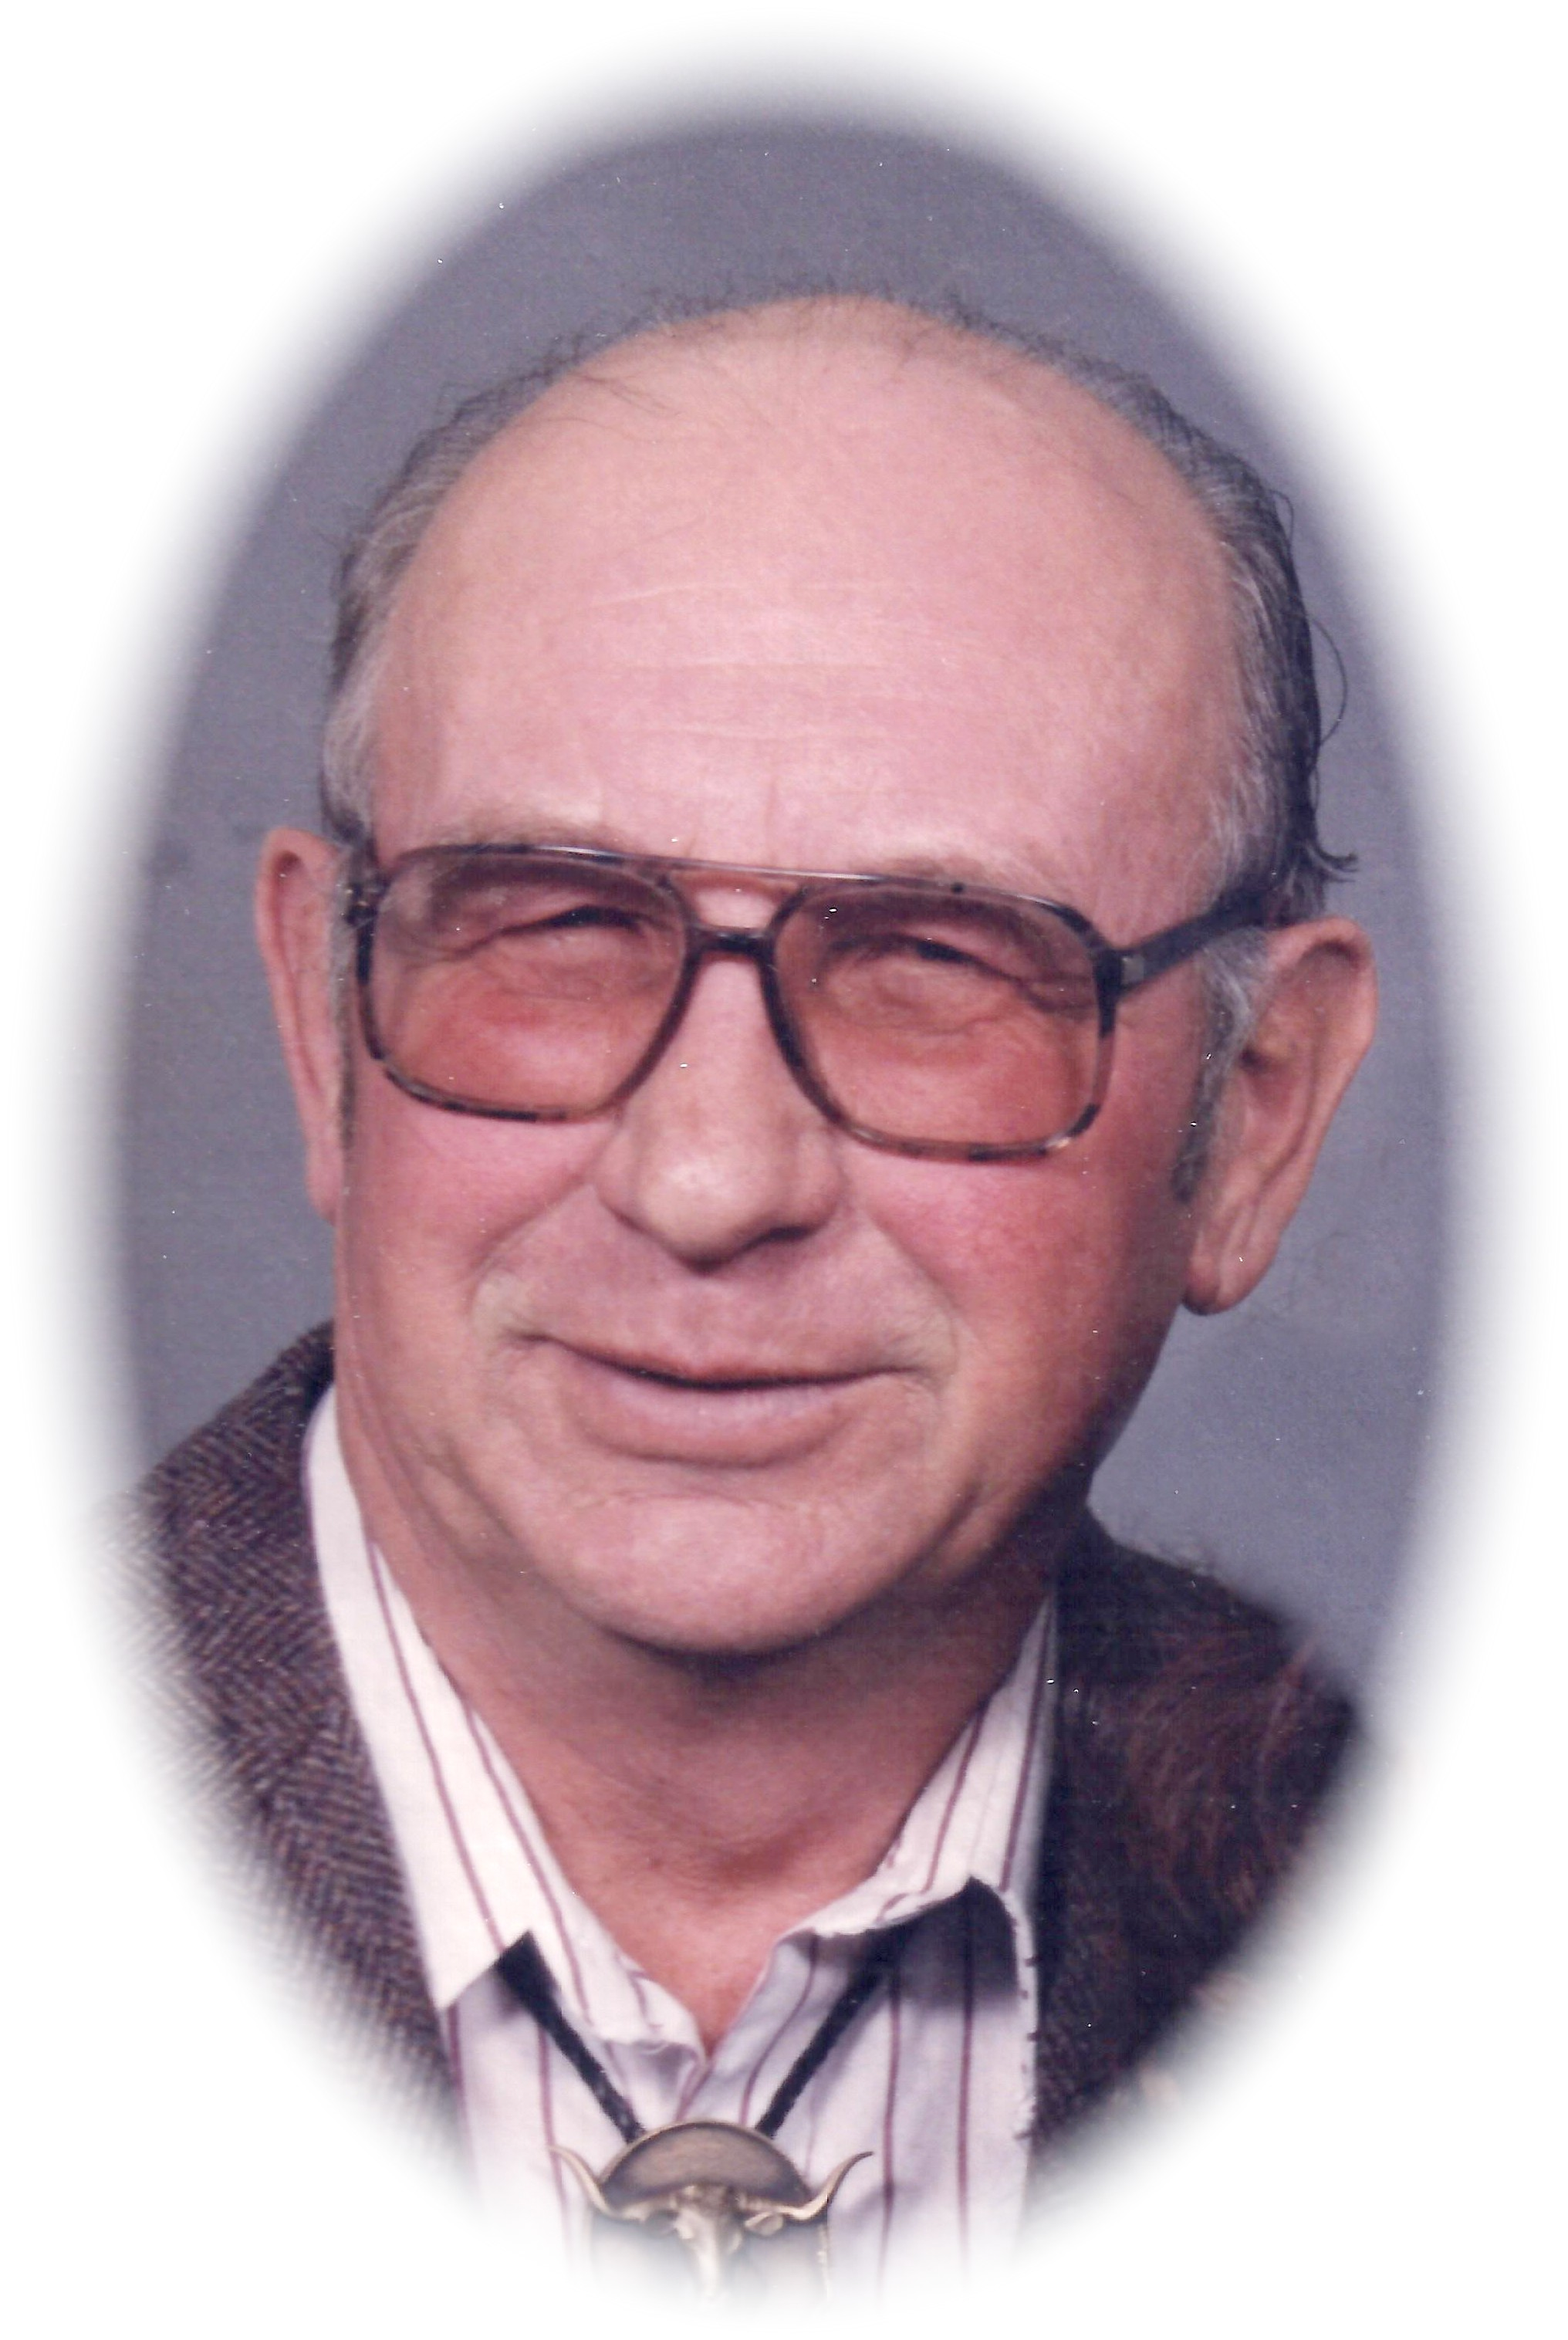 Montana mccone county circle - Alvin William Waller Age 83 Of Circle Passed Away On May 28 2014 At The Mccone County Health Center In Circle Mt